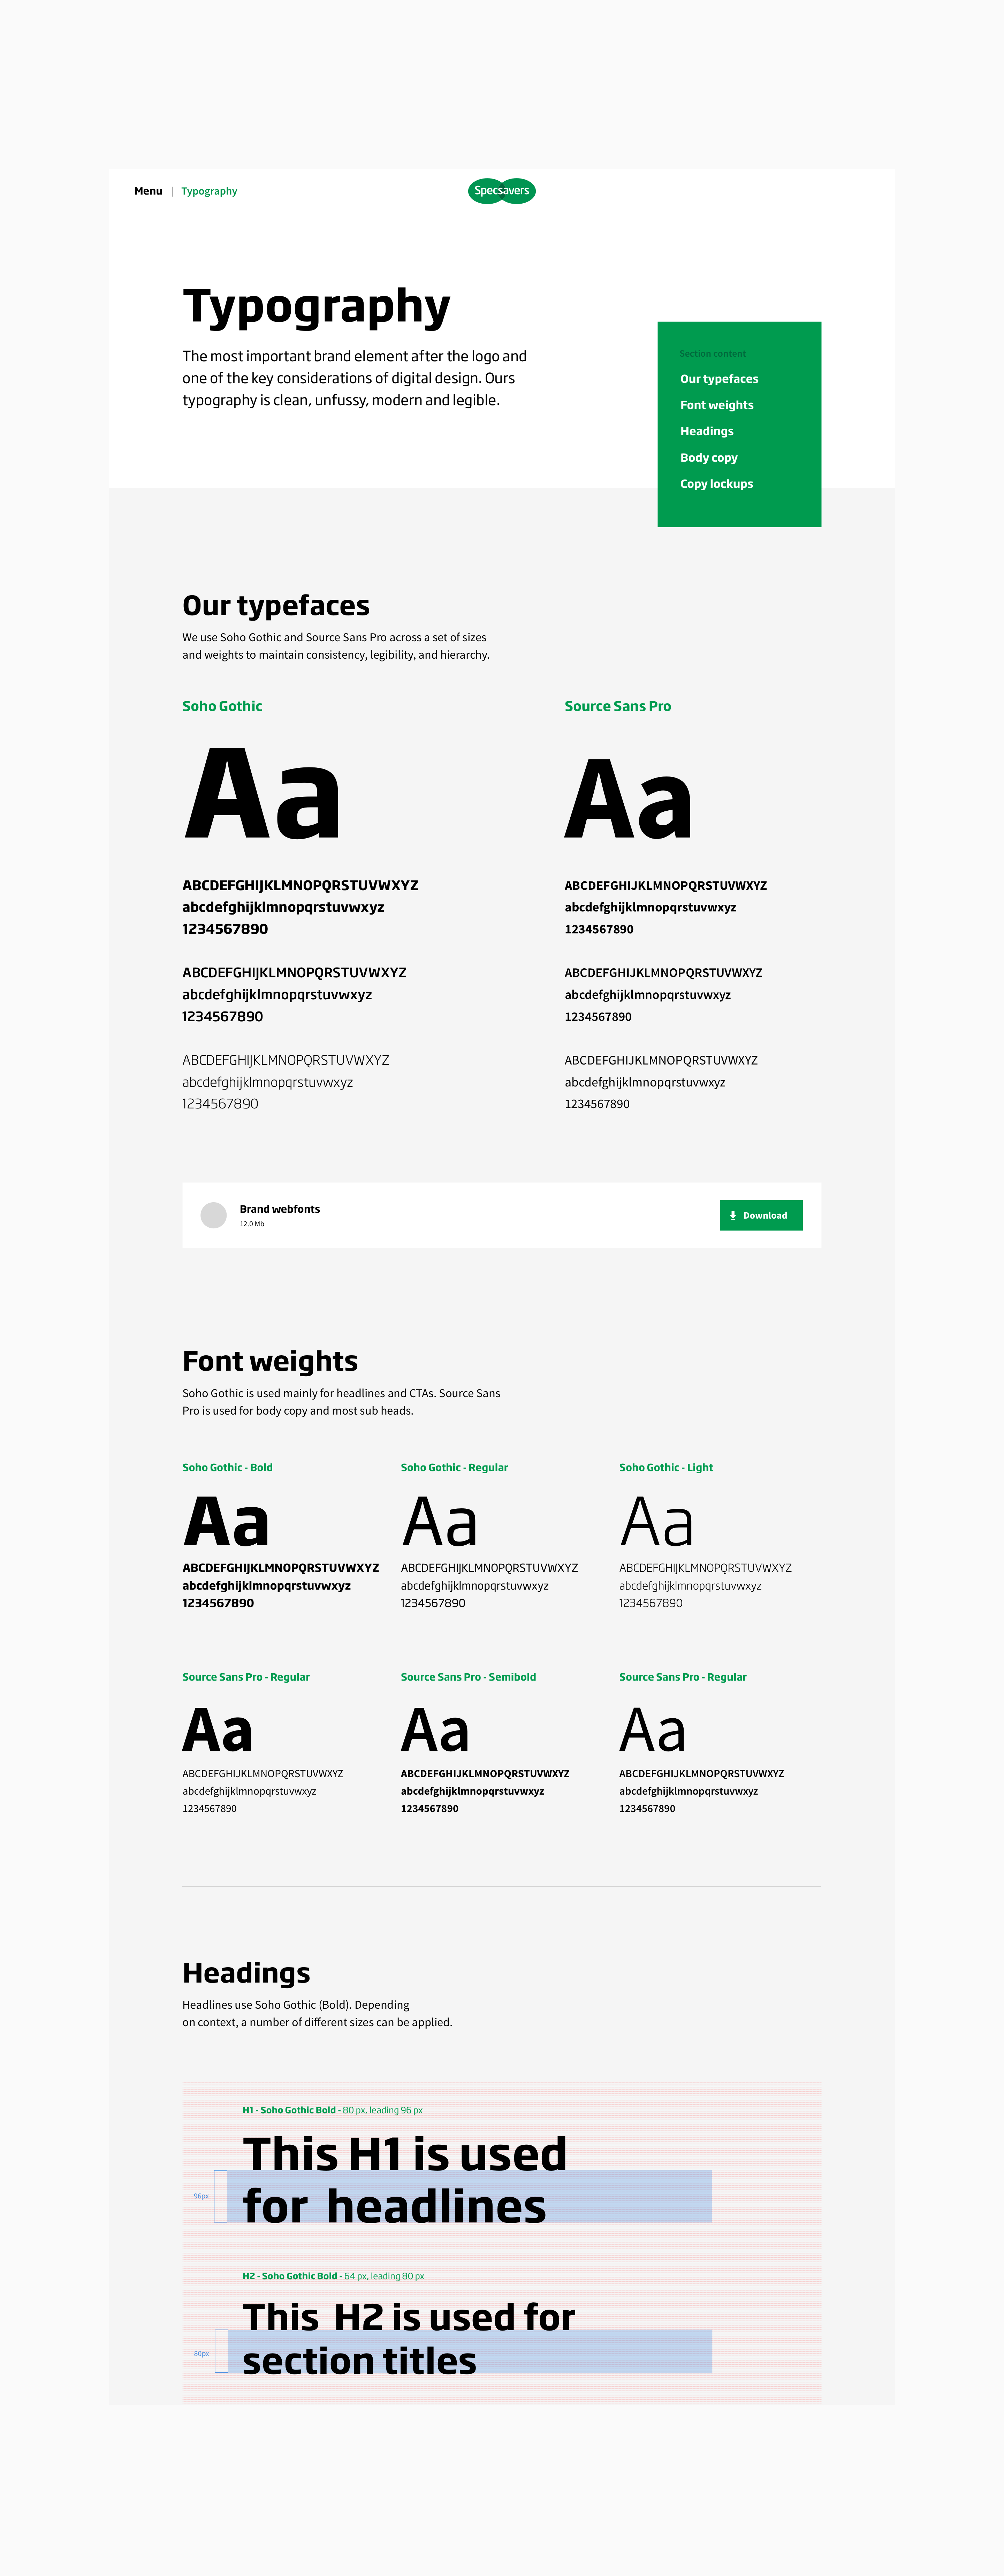 Specsavers_DDS_Typography_1440px-1